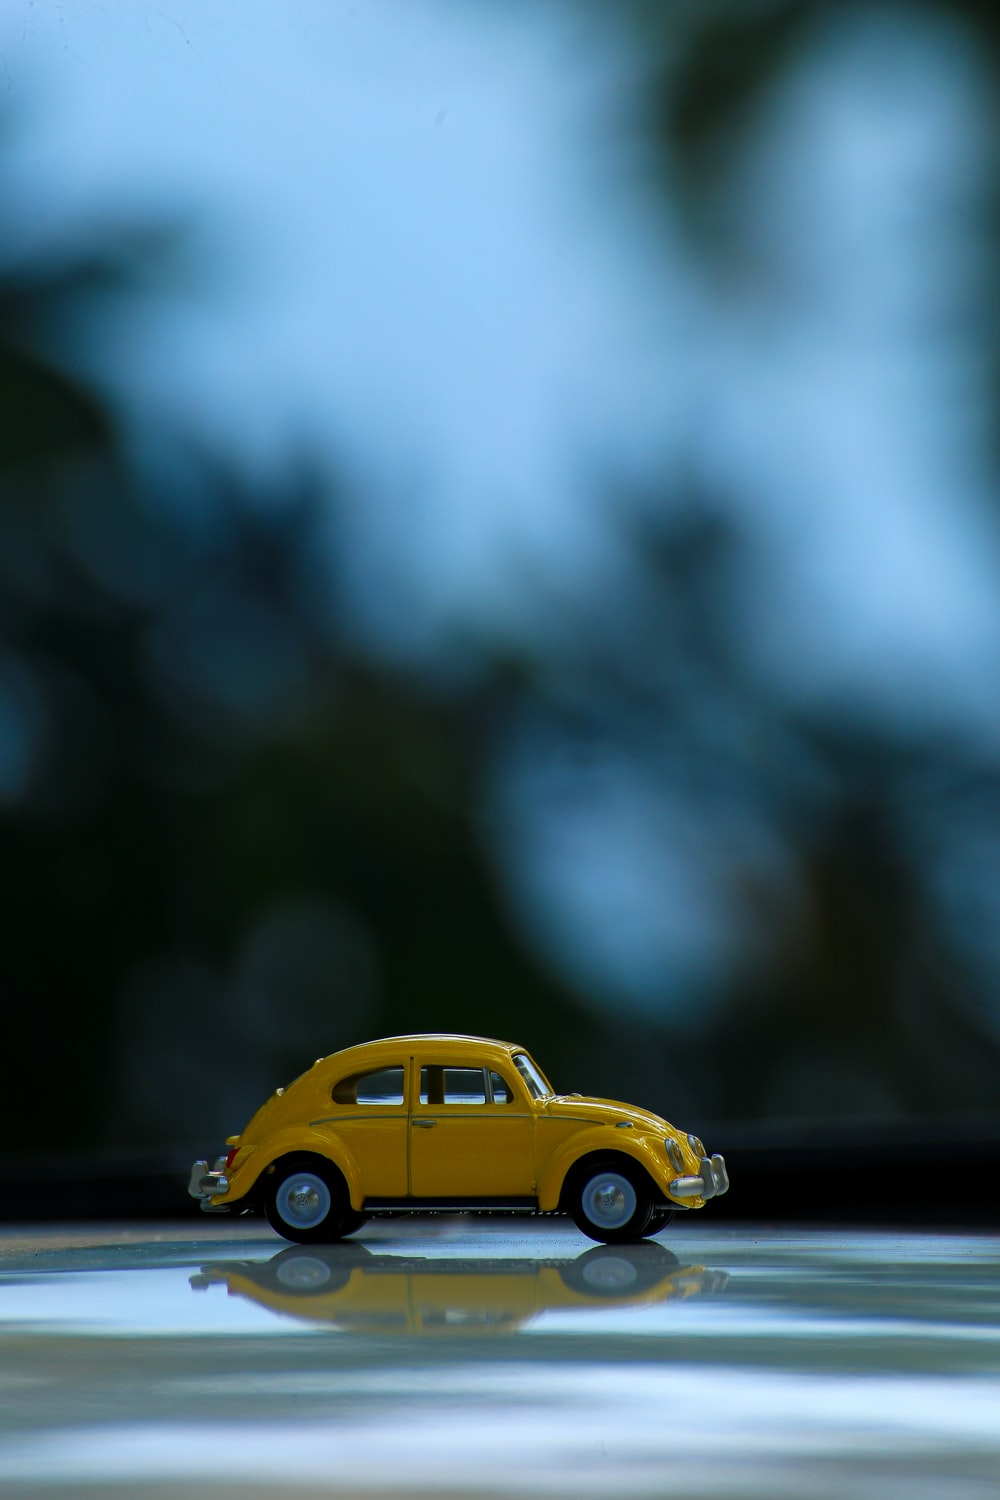 yellow volkswagen beetle on black asphalt road in tilt shift lens